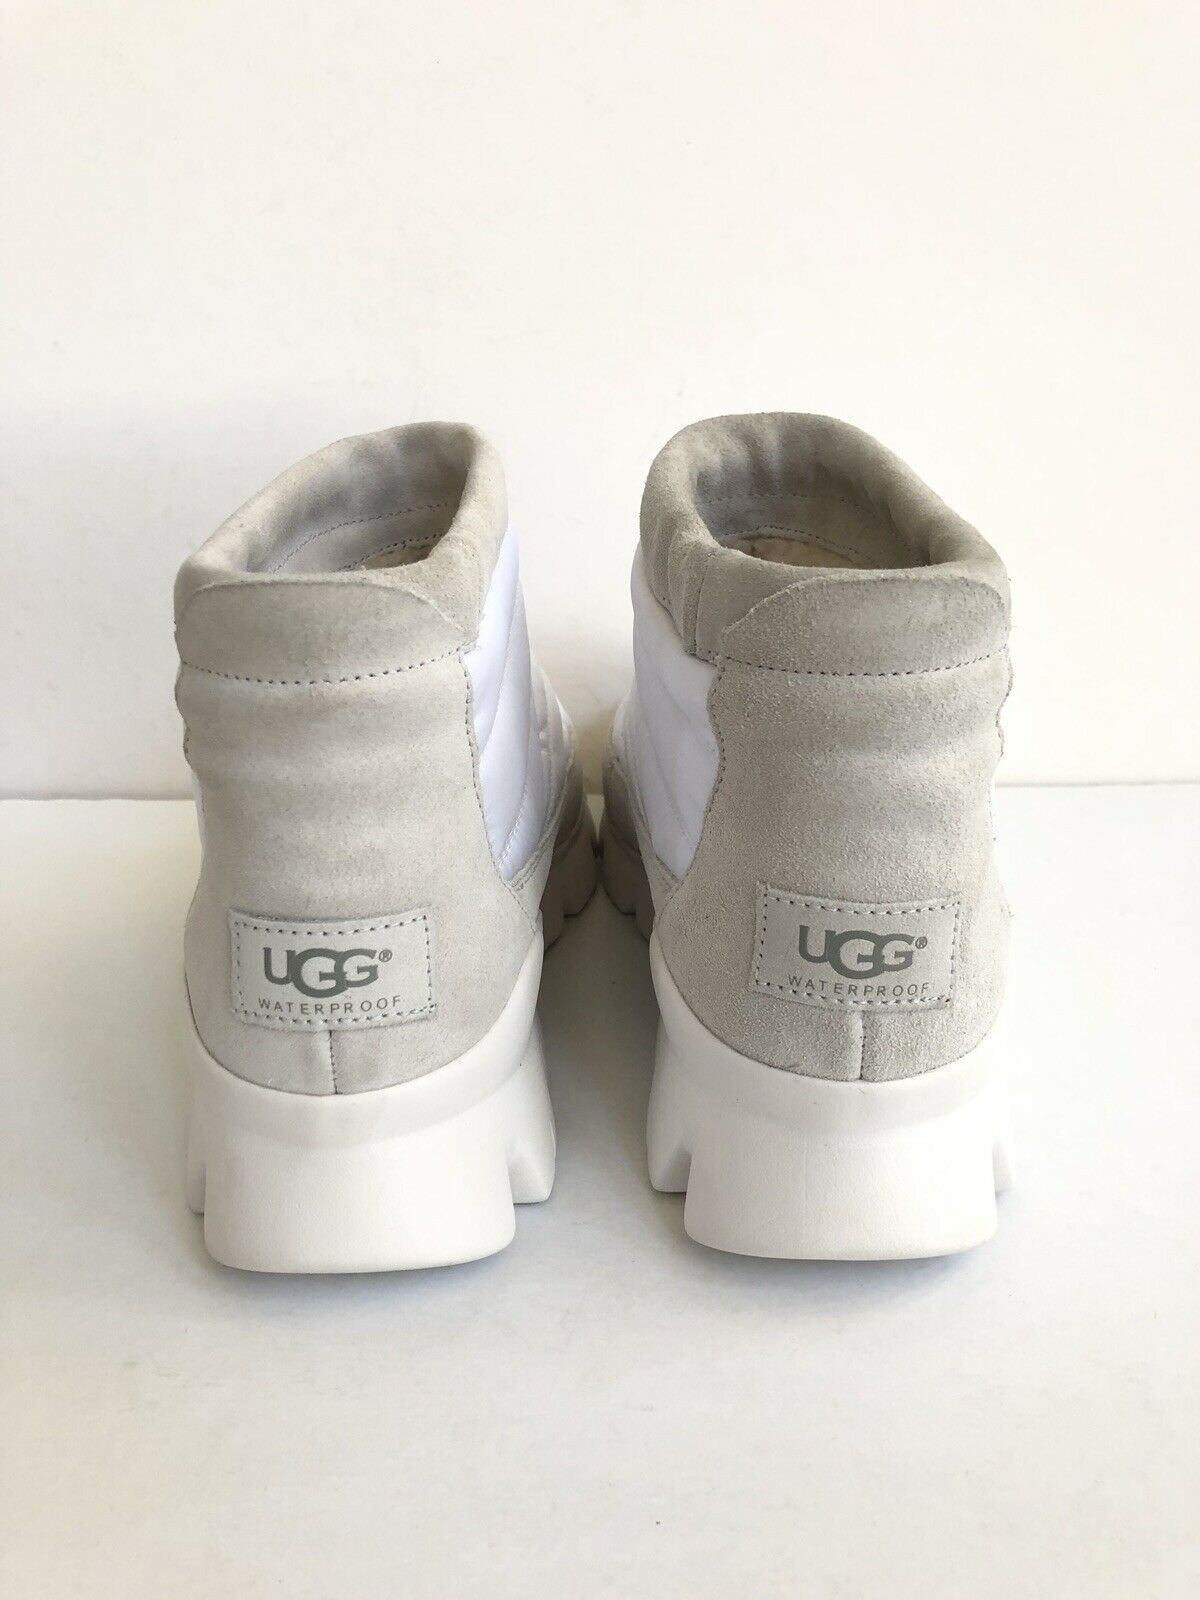 UGG CENTARA WHITE WATERPROOF ANKLE QUILTED SNEAKER SHOE US 6.5 / EU 37.5 /UK 4.5 image 4